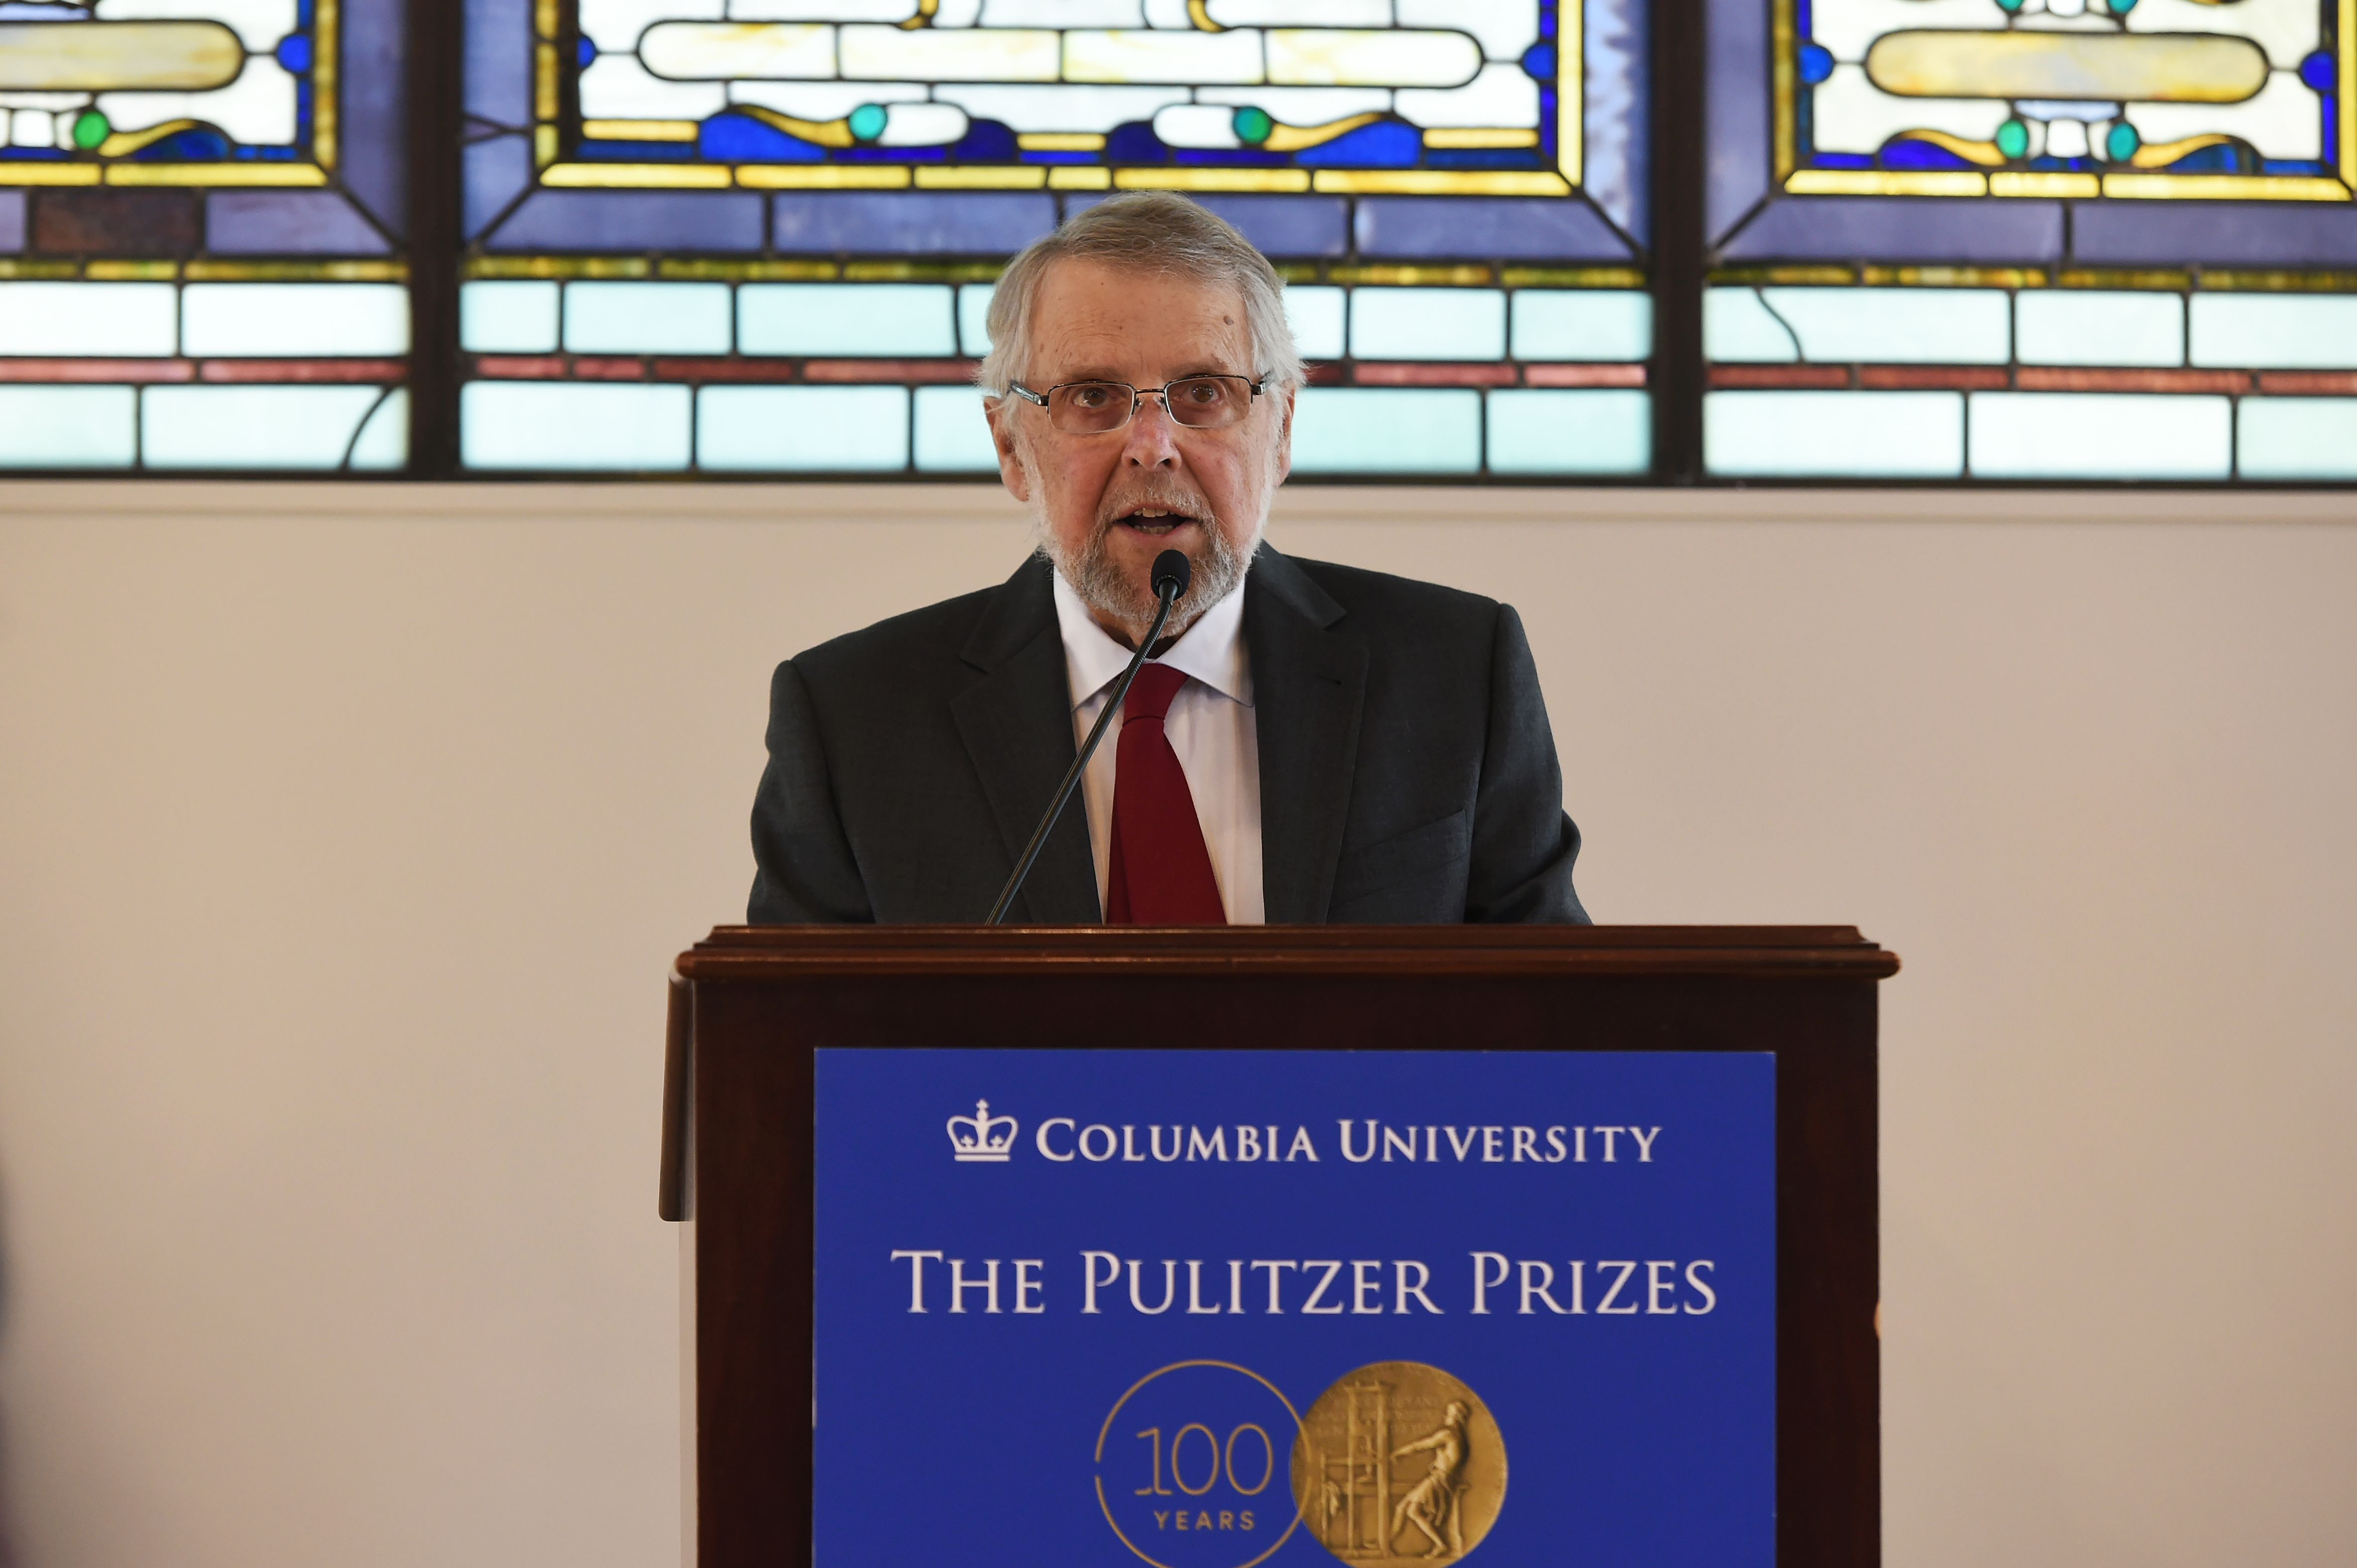 Mike Pride, administrator of The Pulitzer Prizes, announces the 2016 Pulitzer Prize winners at the Columbia University in New York on April 18, 2016.